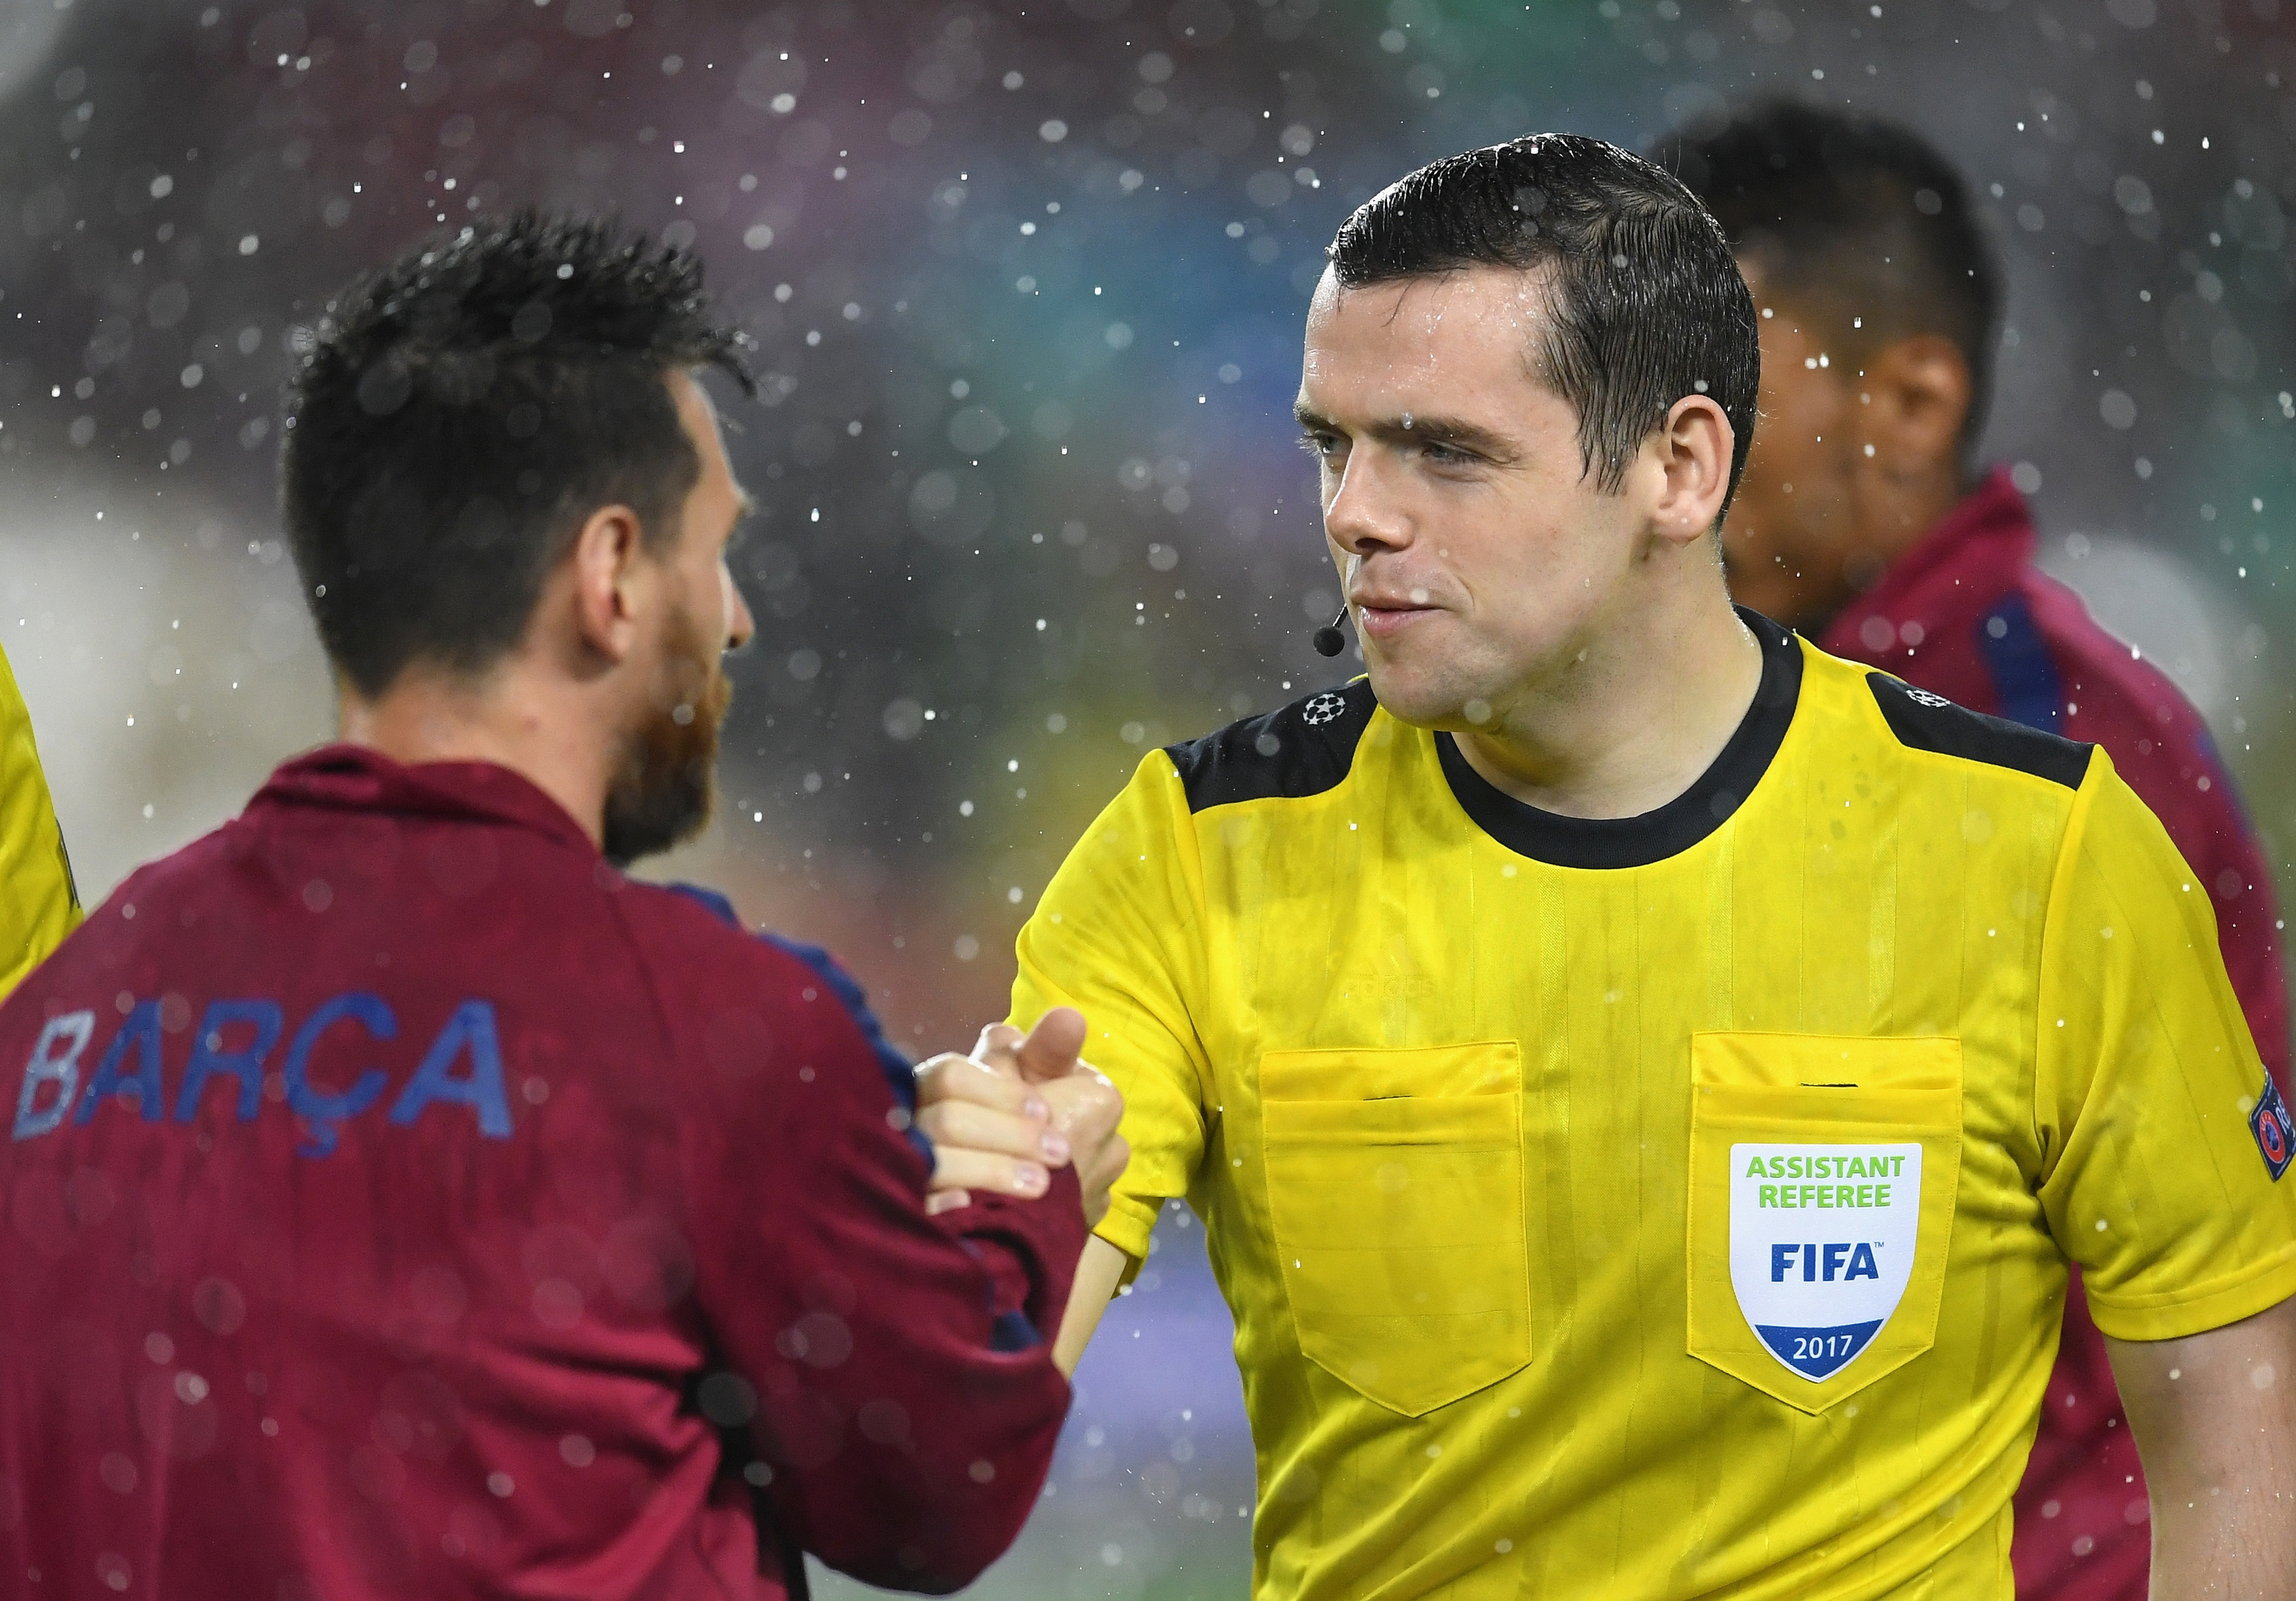 Assistant referee Douglas Ross  shakes hands with Lionel Messi after the Champions League match between Barcelona and Olympiakos Piraeus (David Ramos/Getty Images)